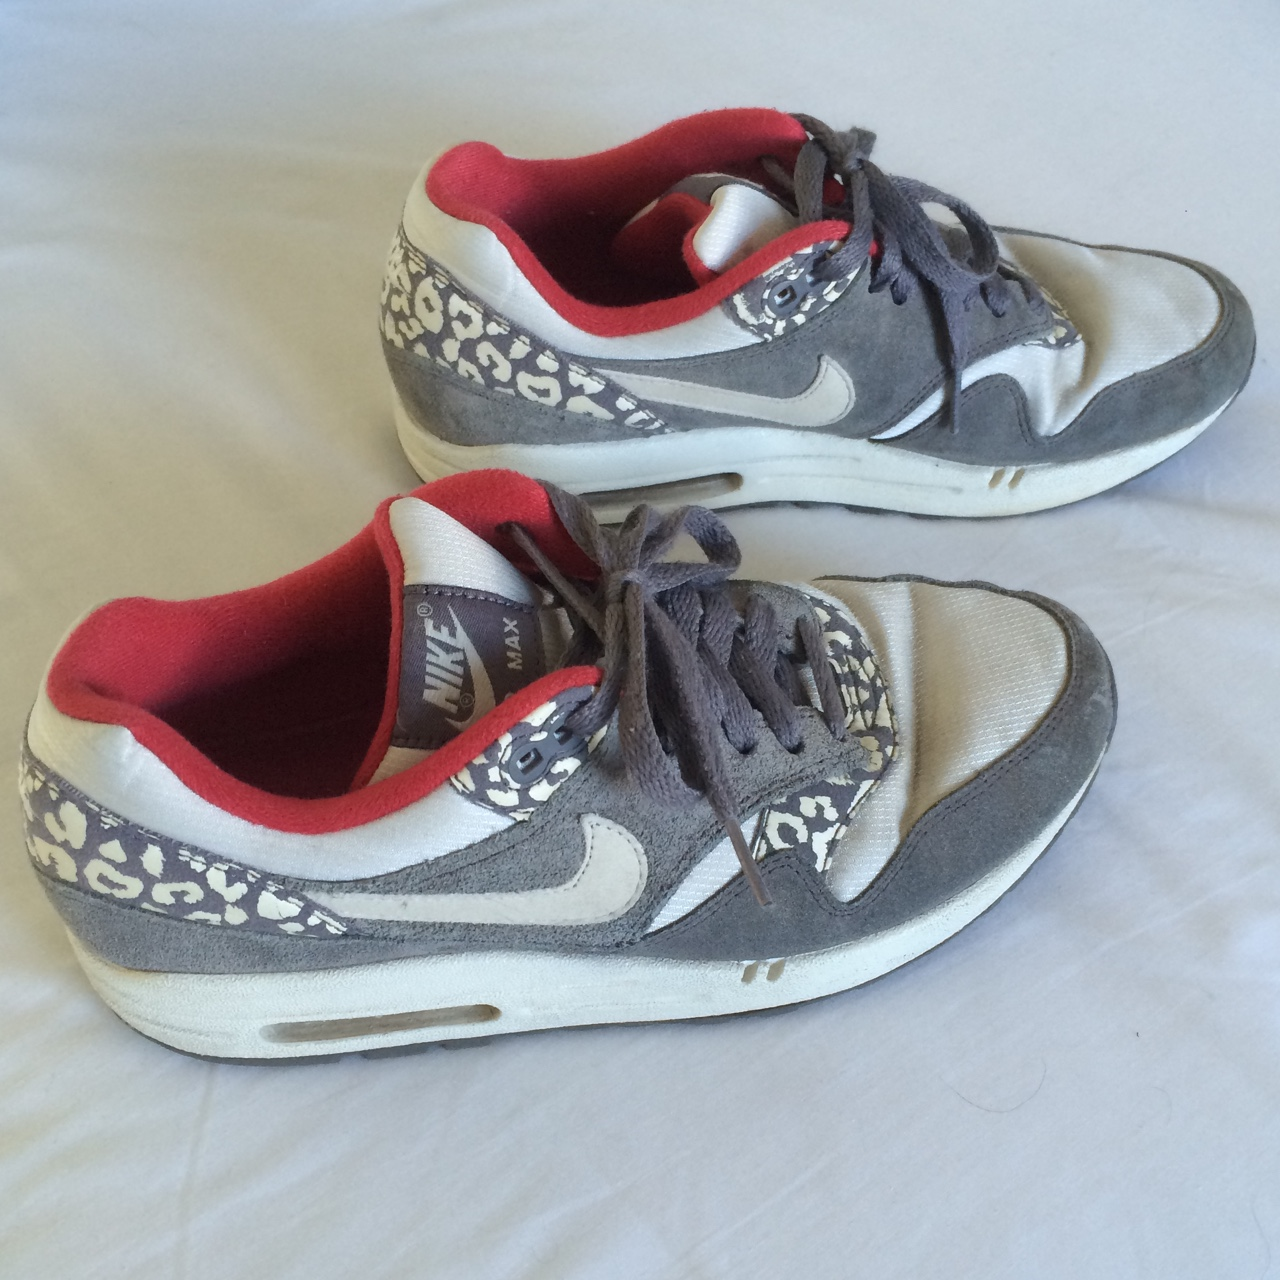 Nike air max 1 limited condition, snow